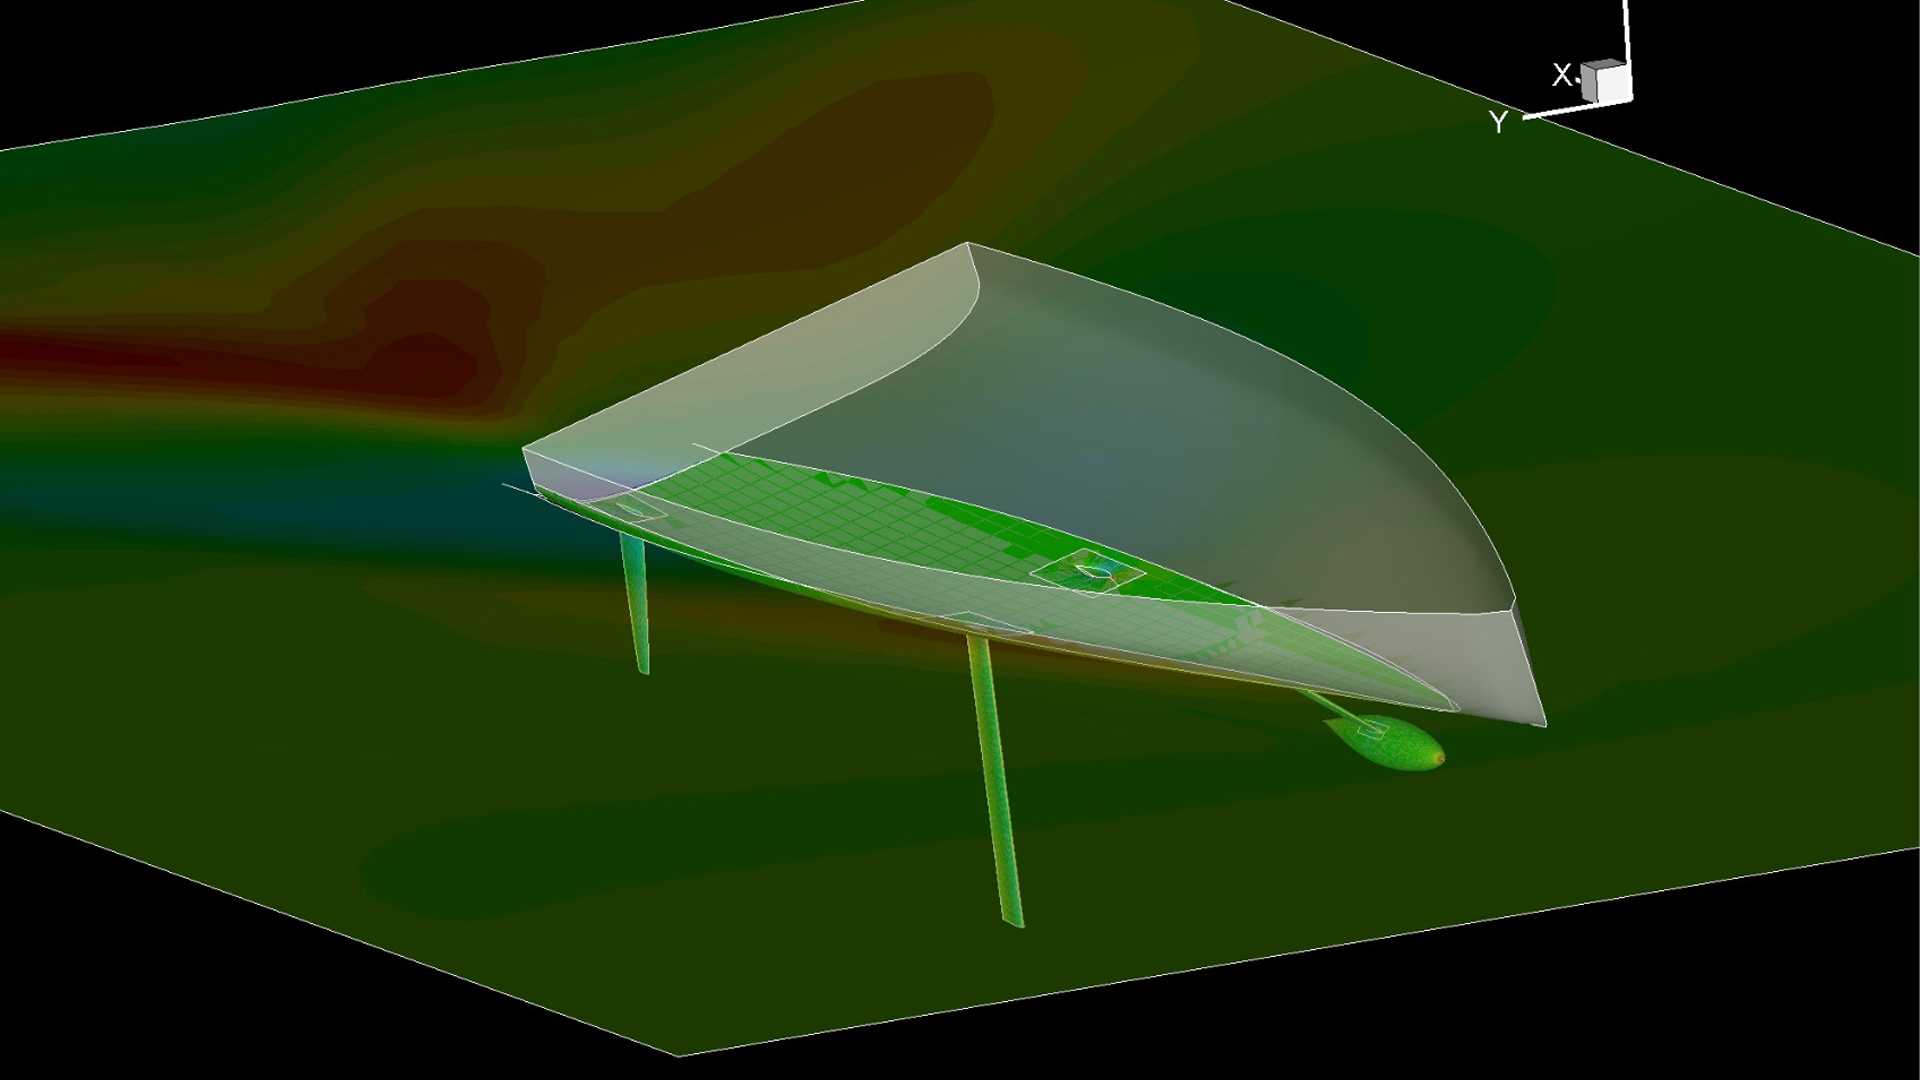 This a screen grab image of CFD (computational fluid dynamics) analysis being undertaken on a pre-lifting foils Owen Clarke IMOCA Open 60 design.